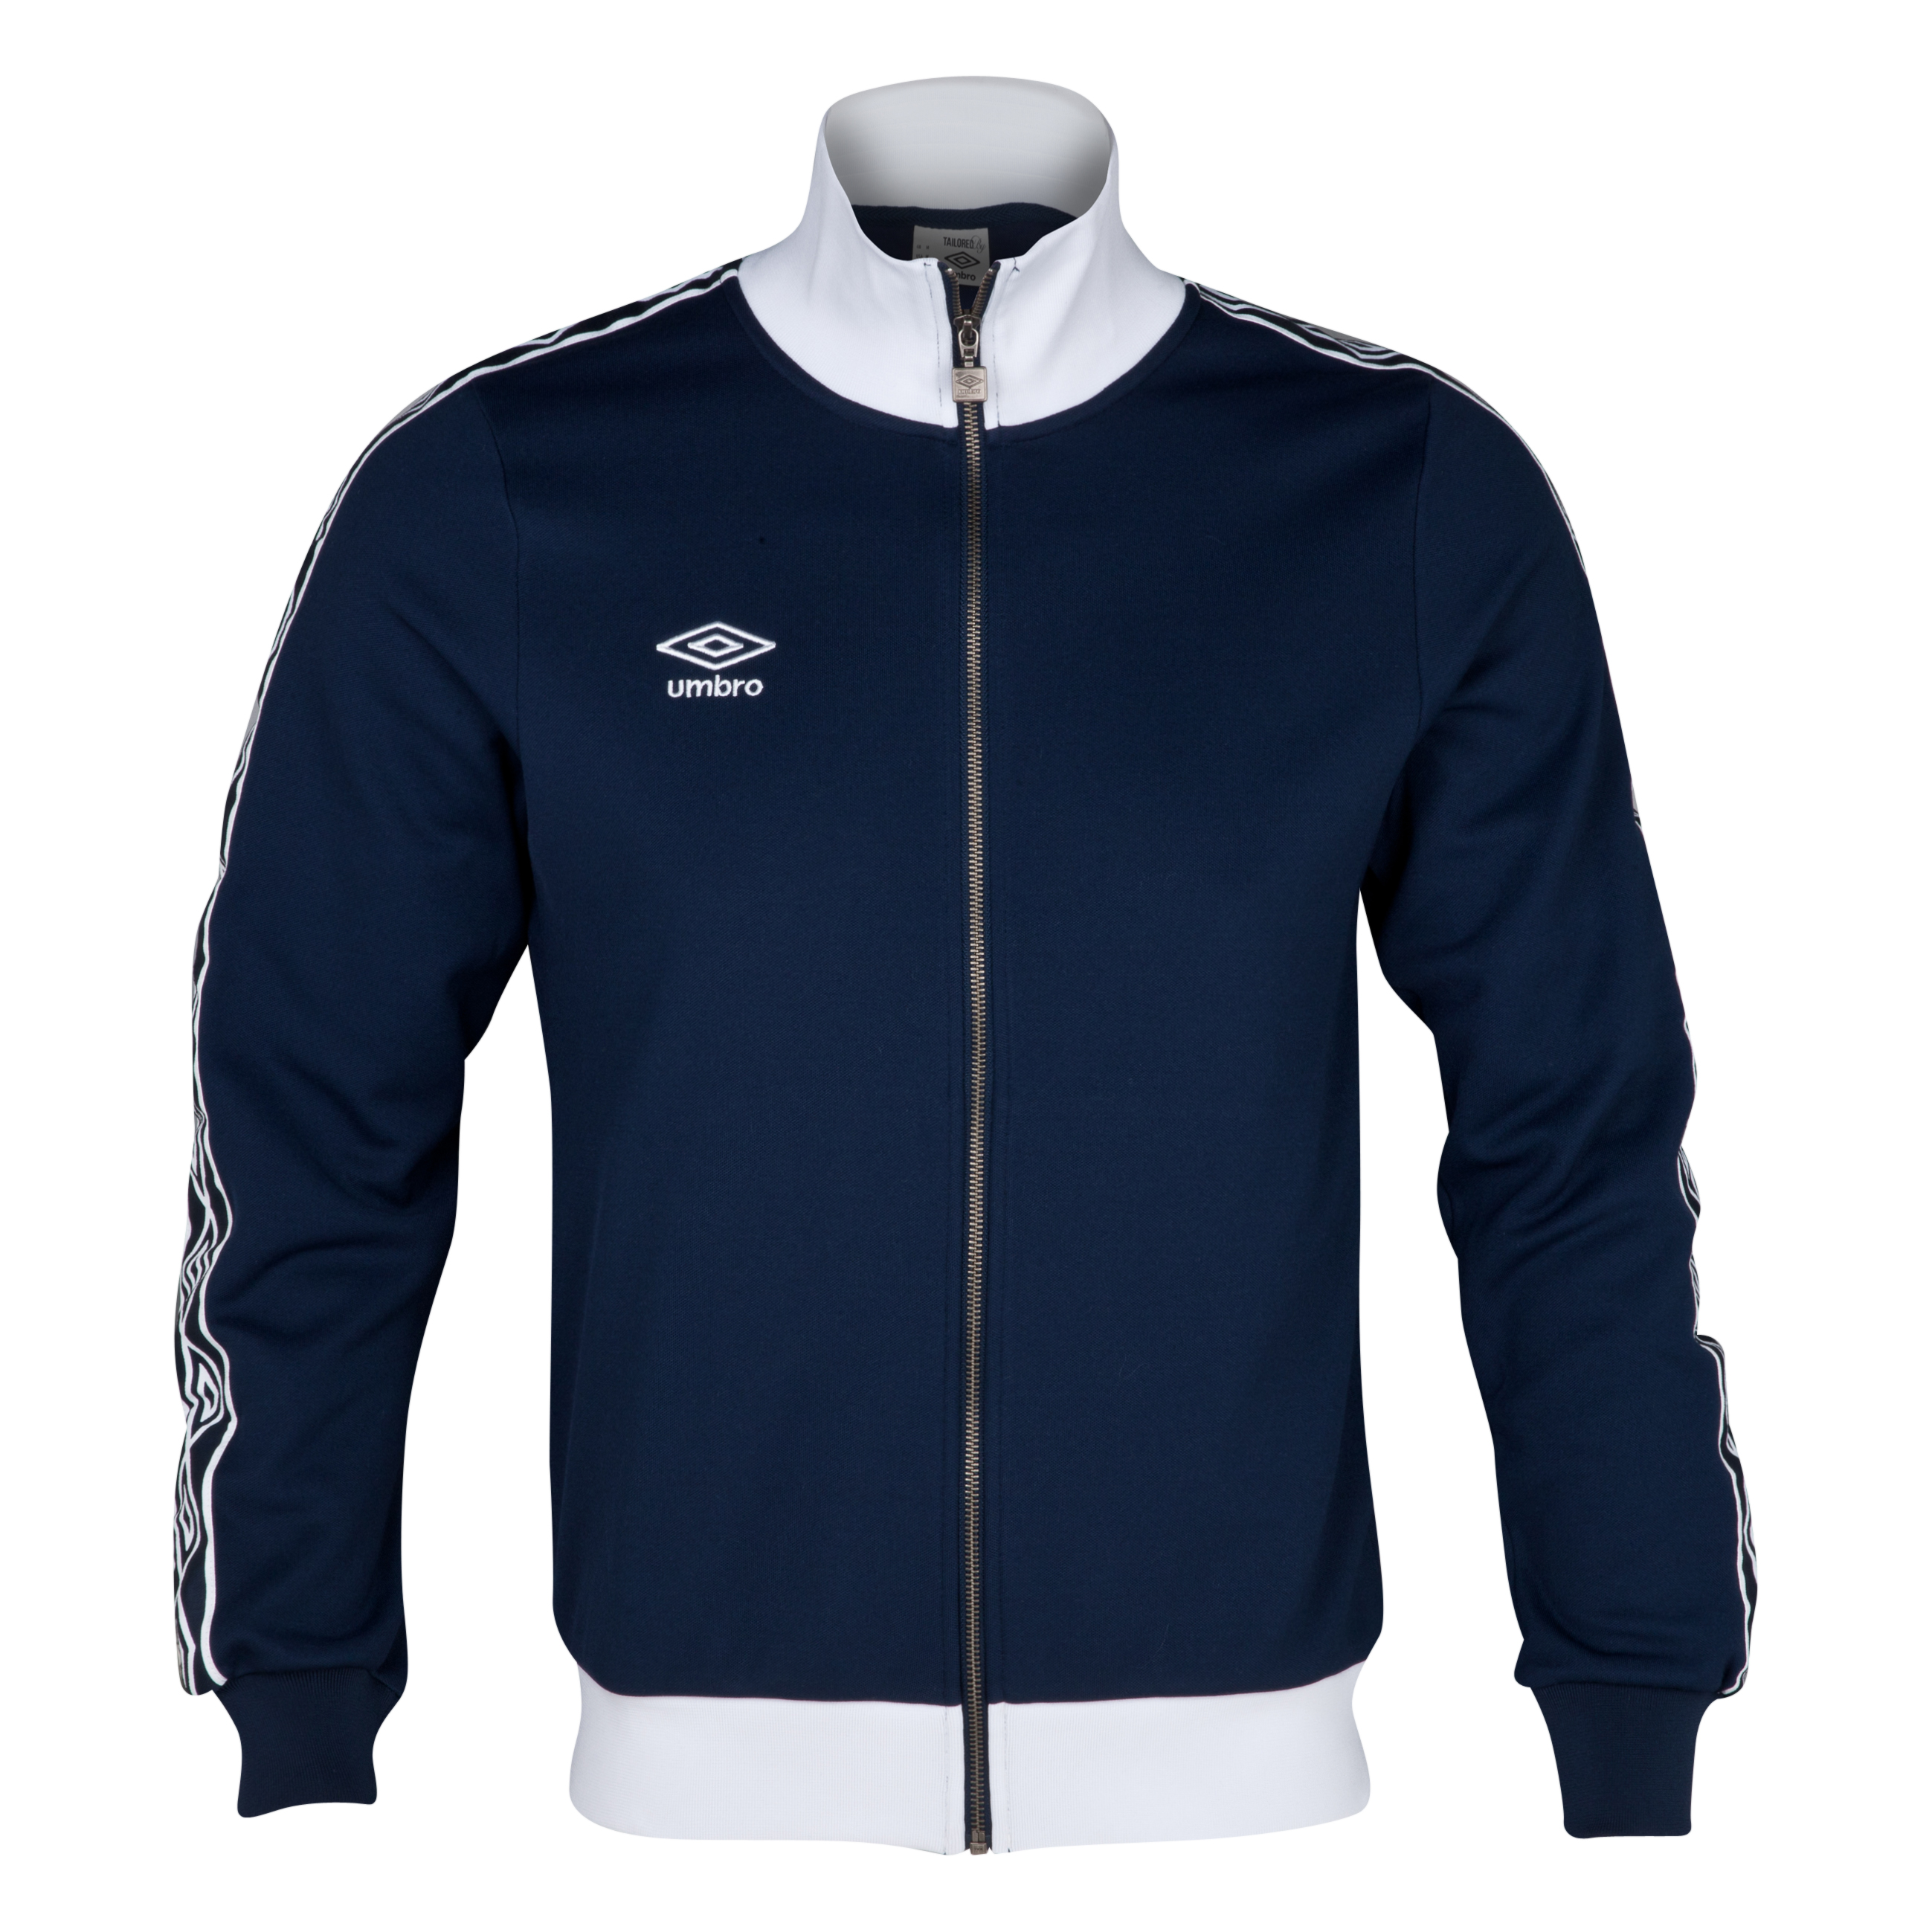 Umbro Heritage Diamond Track Jacket - Dark Navy/White